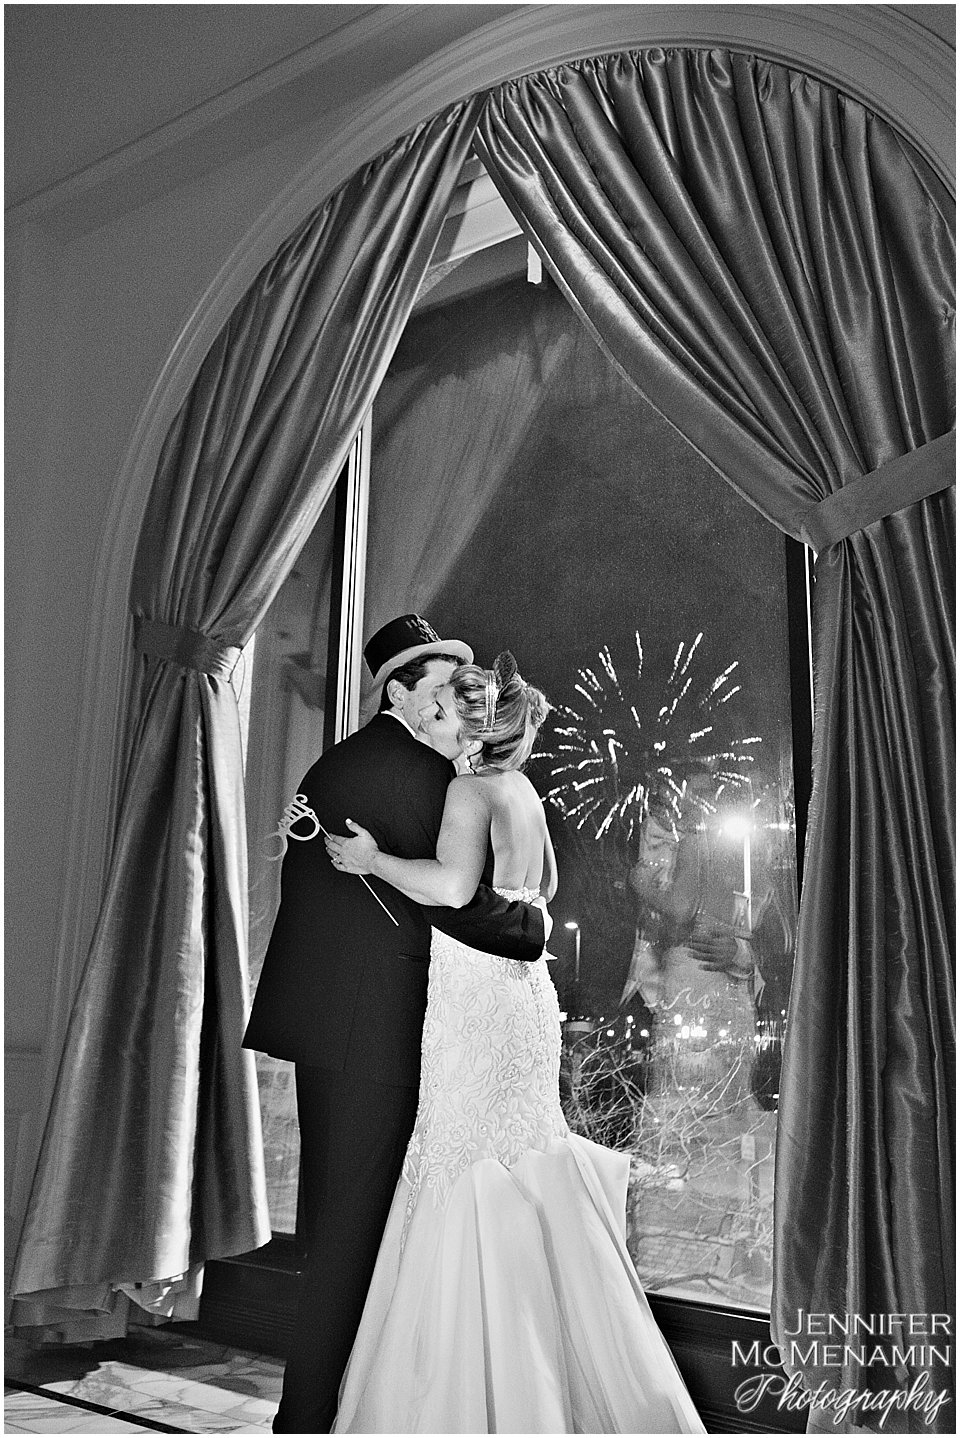 030-JohnsonBollinger_02924bw_Jennifer-McMenamin-Photography-Royal-Sonesta-Harbor-Court-wedding